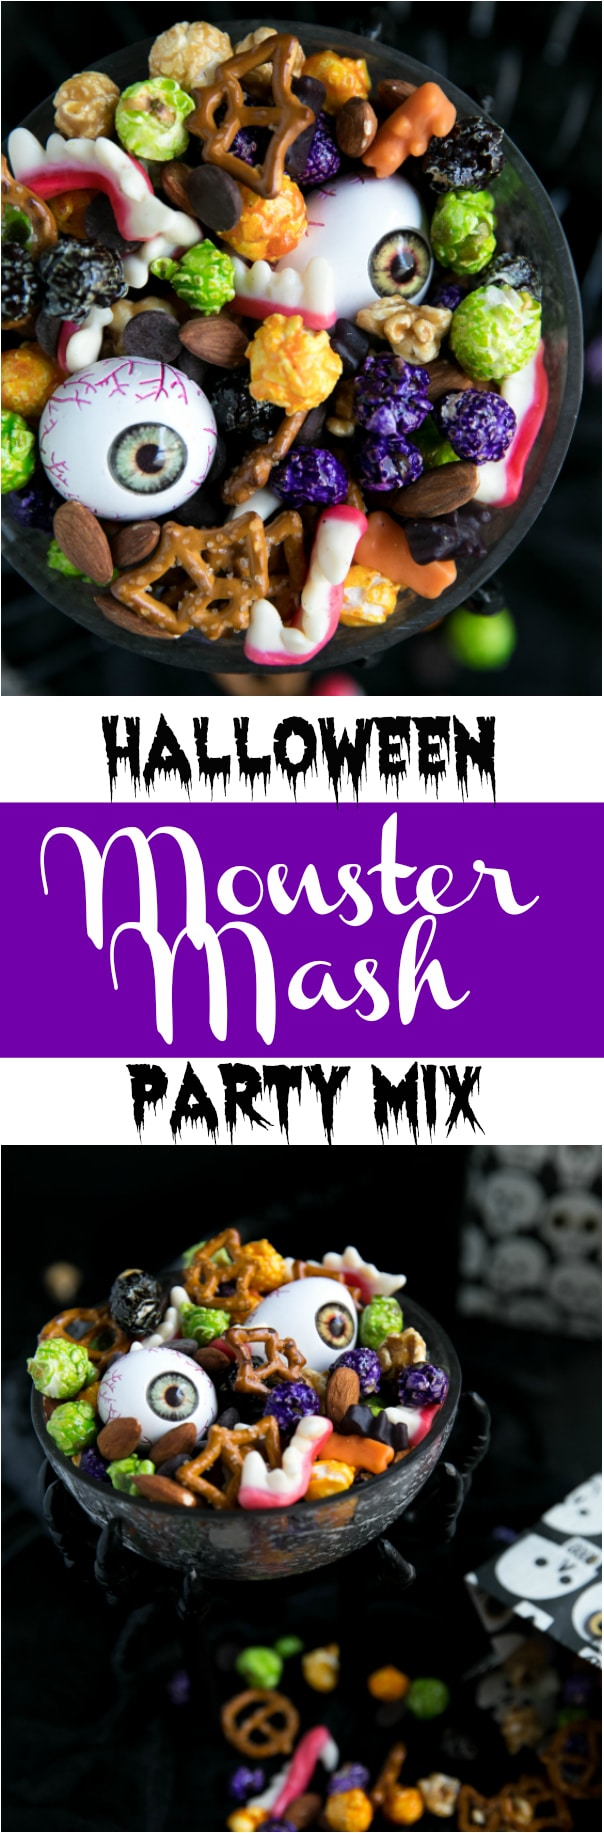 Completely addicting, this Halloween Monster Mash Party Mix has a little something for everyone and takes just 5 minutes to mix together. #halloween #snacks #party #holiday #entertaining